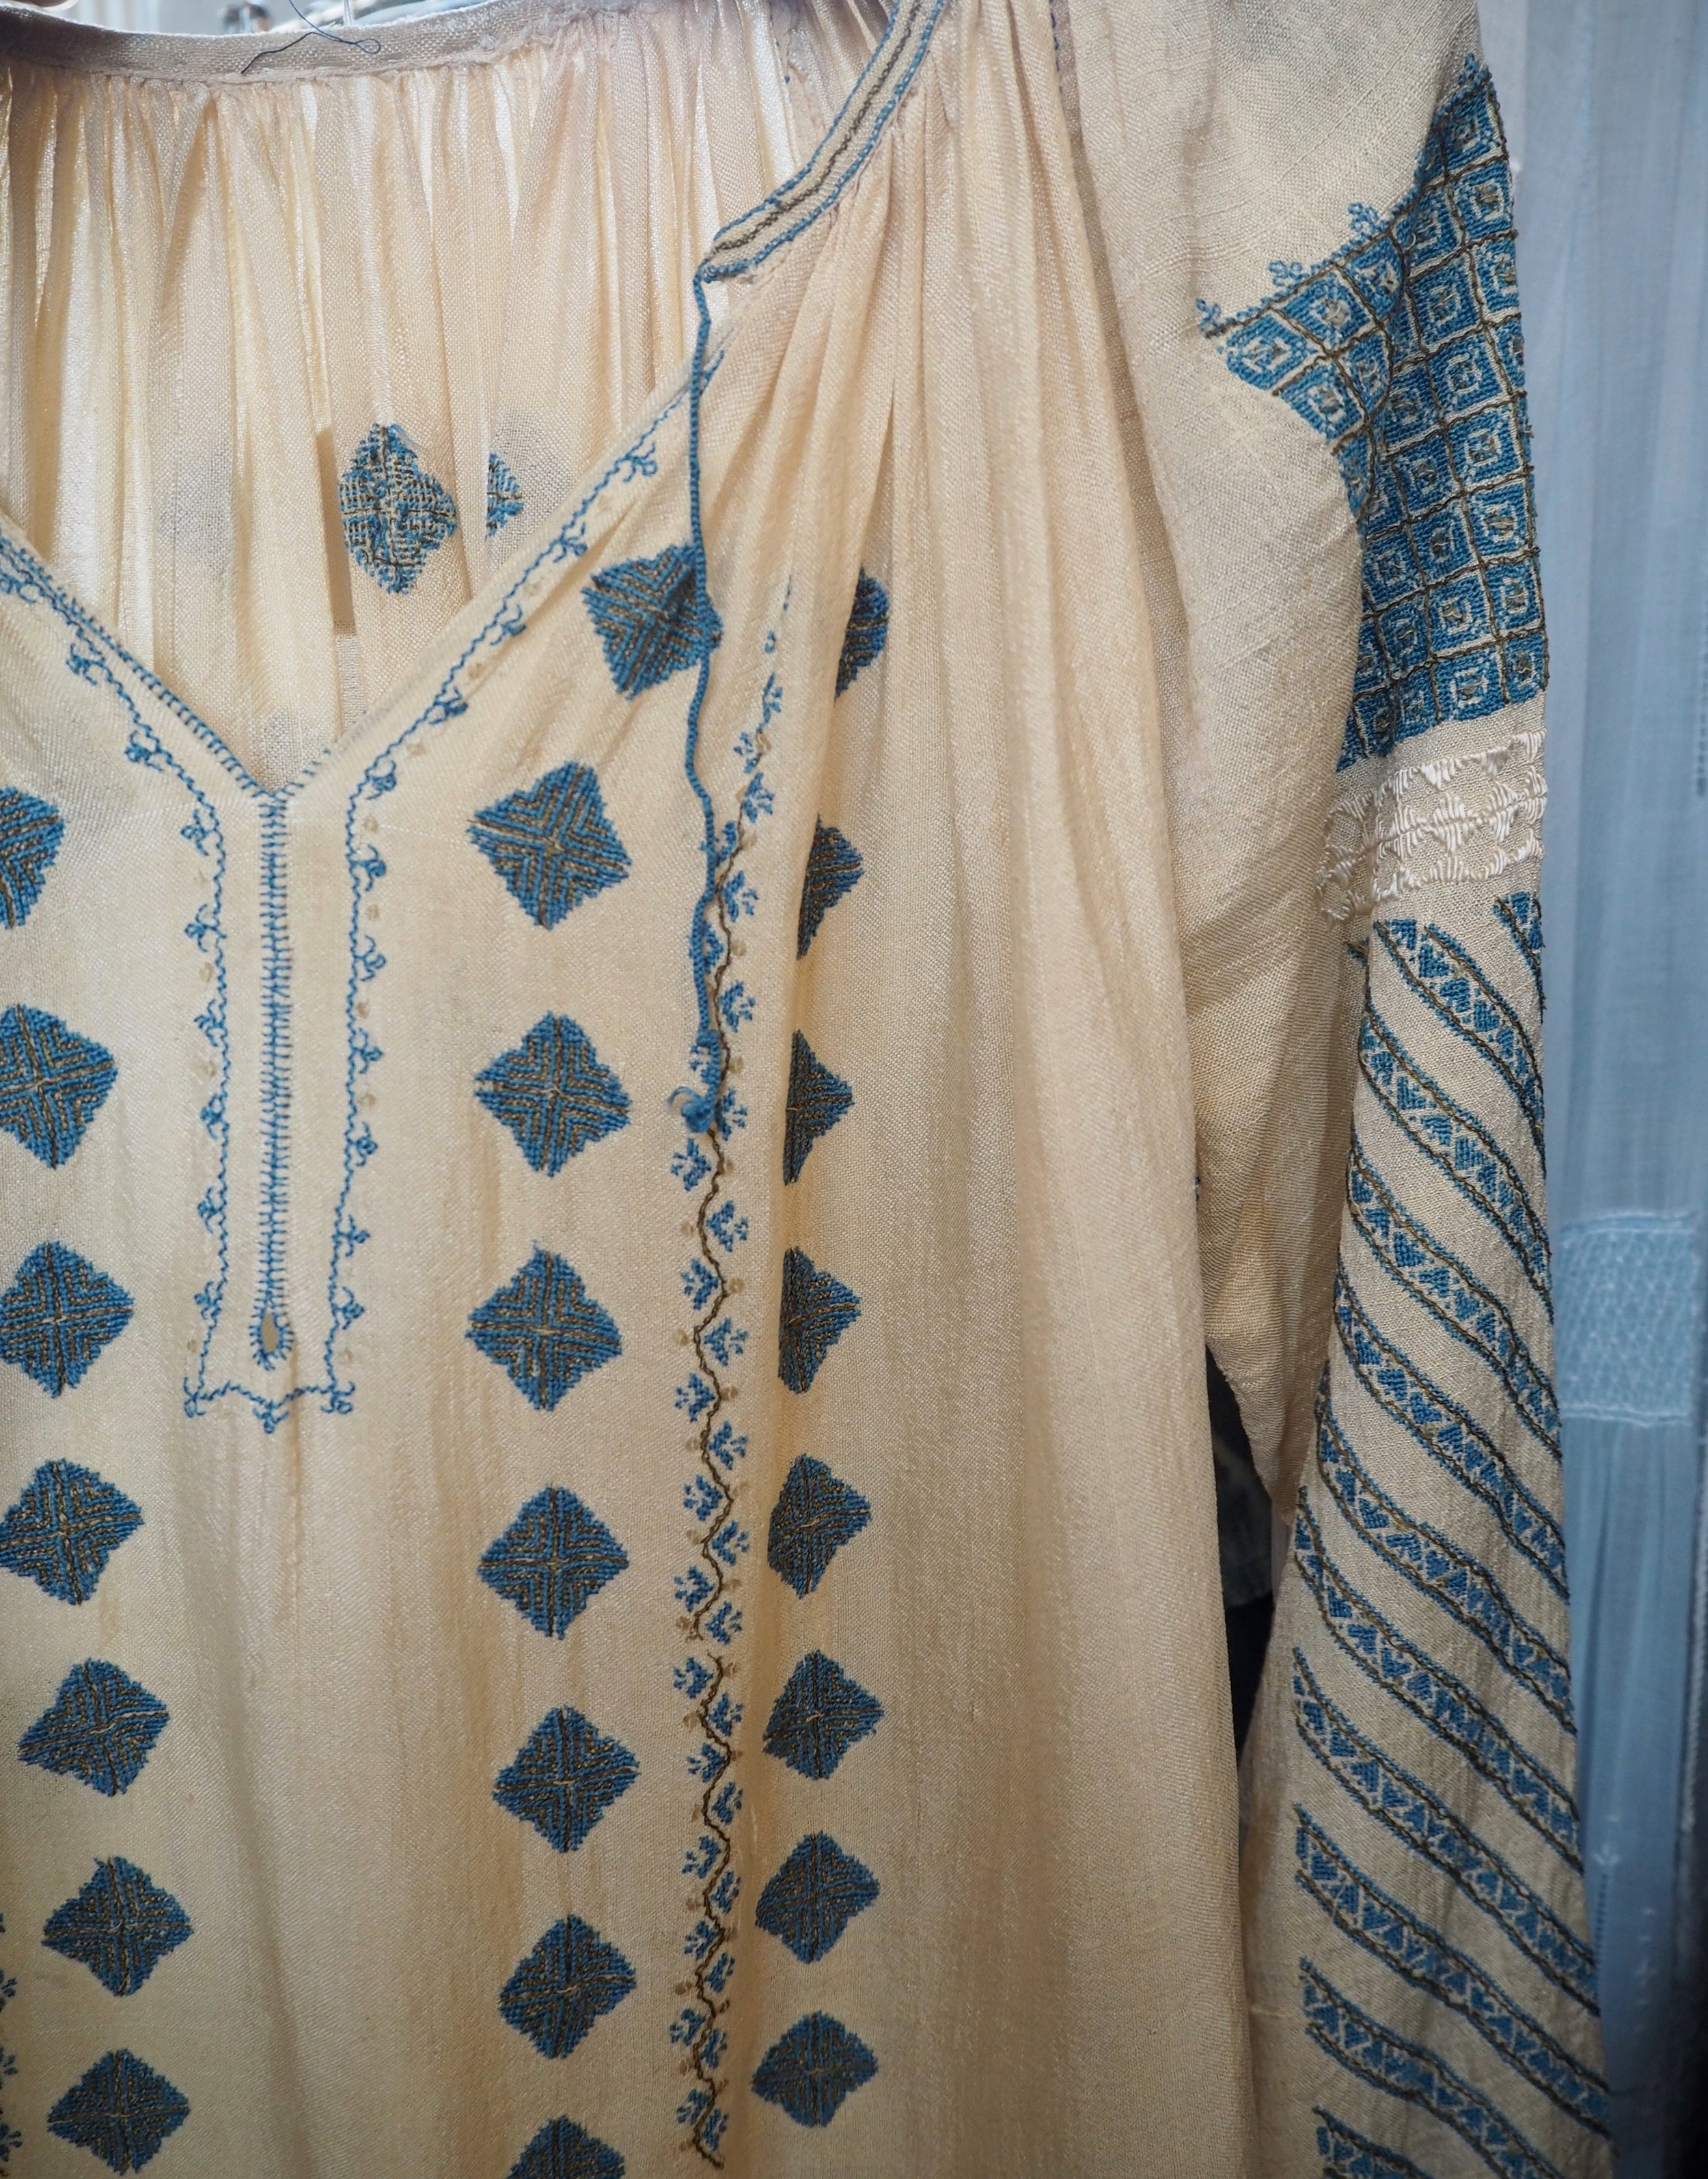 Early bohemian blouse from Selfish Maids